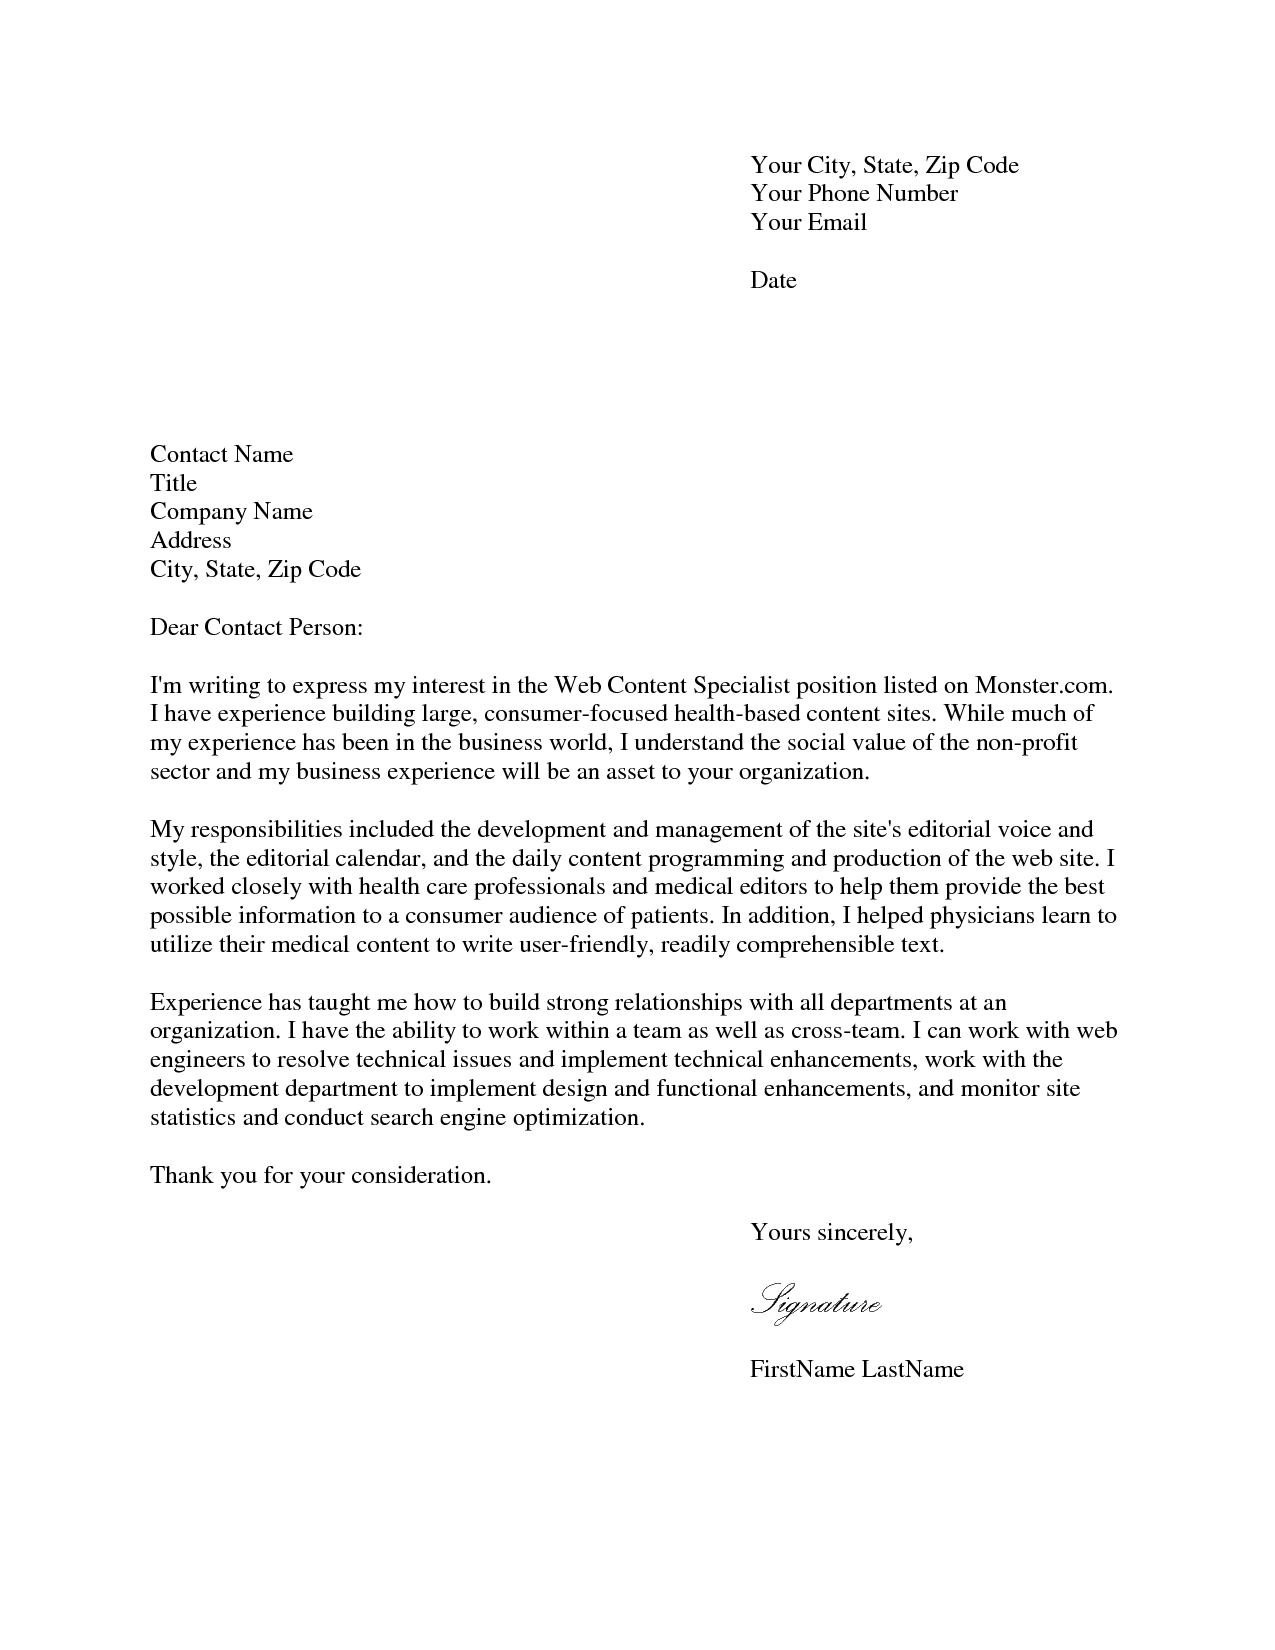 best written job application letters simple - Perfect Cover Letter For Job Application